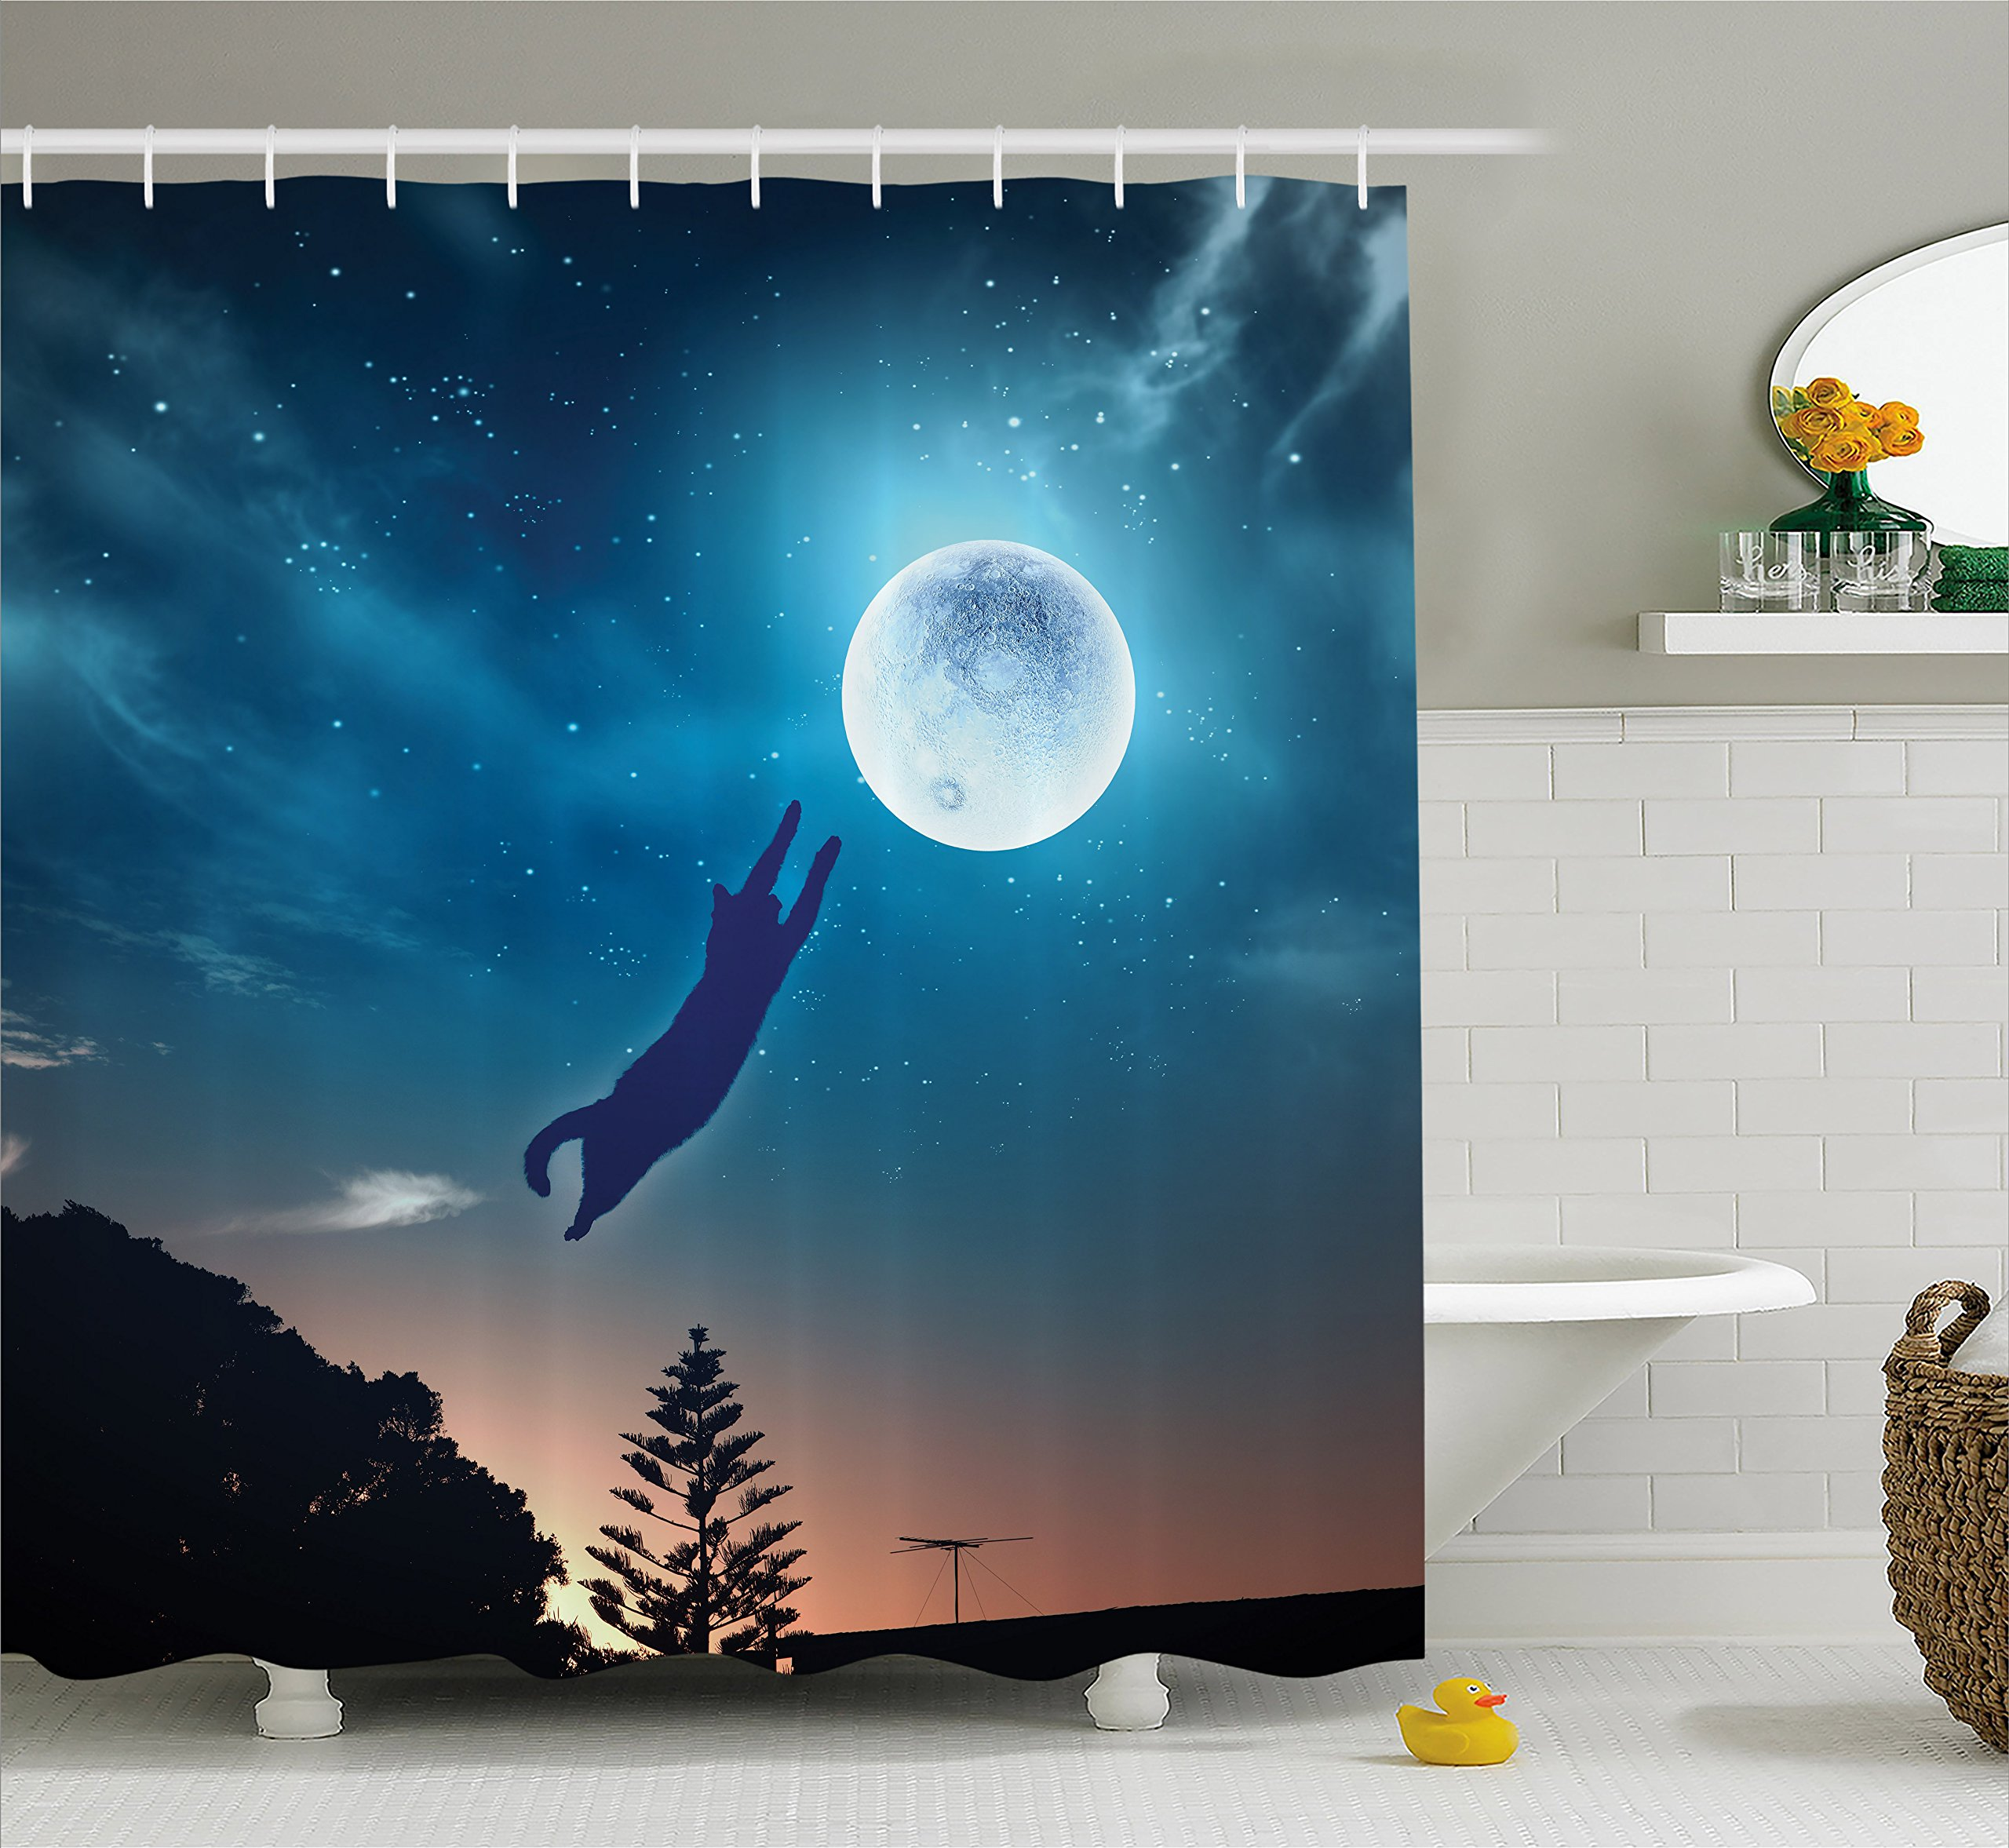 Ambesonne Cat Shower Curtain, Cat Jumping in The Air Catching The Moon at Night Sky with Stars Fantasy Artwork, Fabric Bathroom Decor Set with Hooks, 70 inches, Blue Magenta